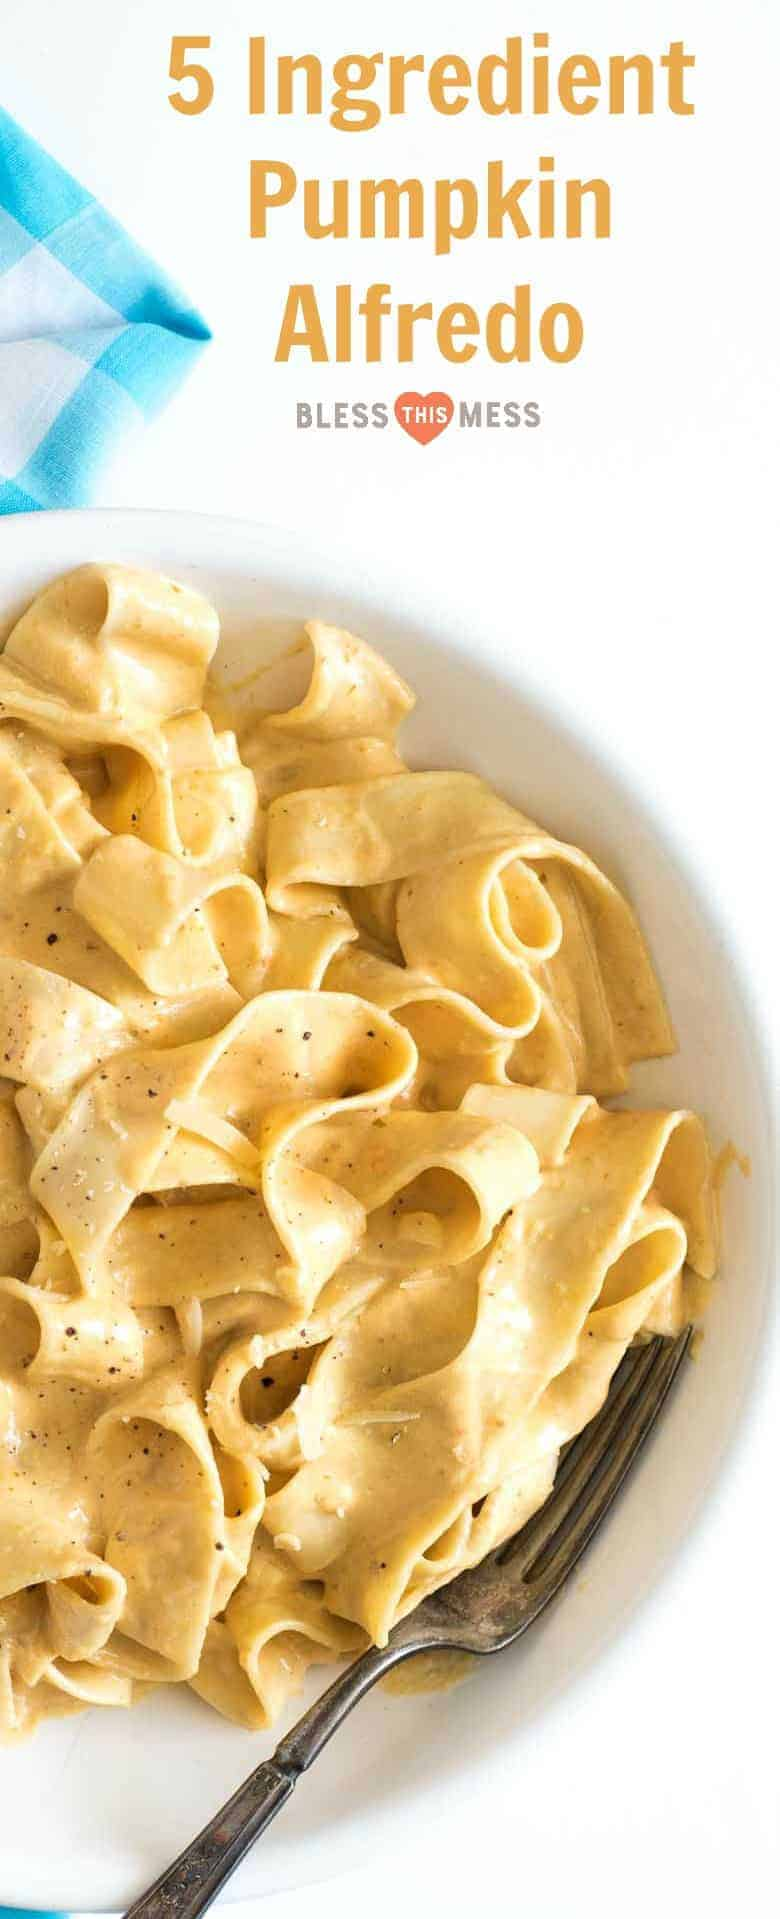 Thick and creamy pumpkin alfredo using canned pumpkin, cream, and garlic makes the perfect sauce for pasta.